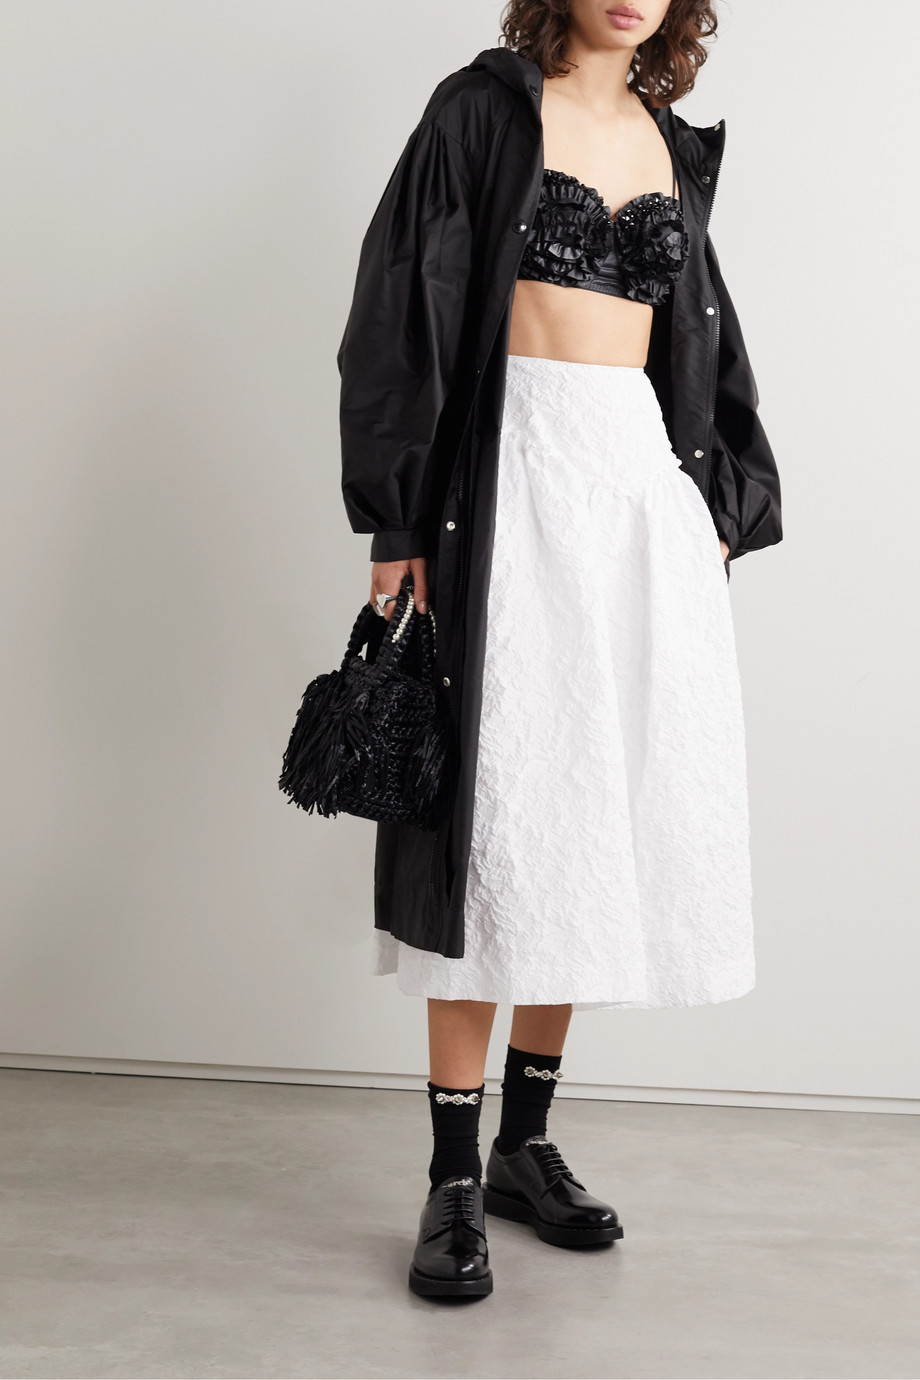 Moncler Genius + 4 Simone Rocha ruffled embellished shell down and mesh bralette